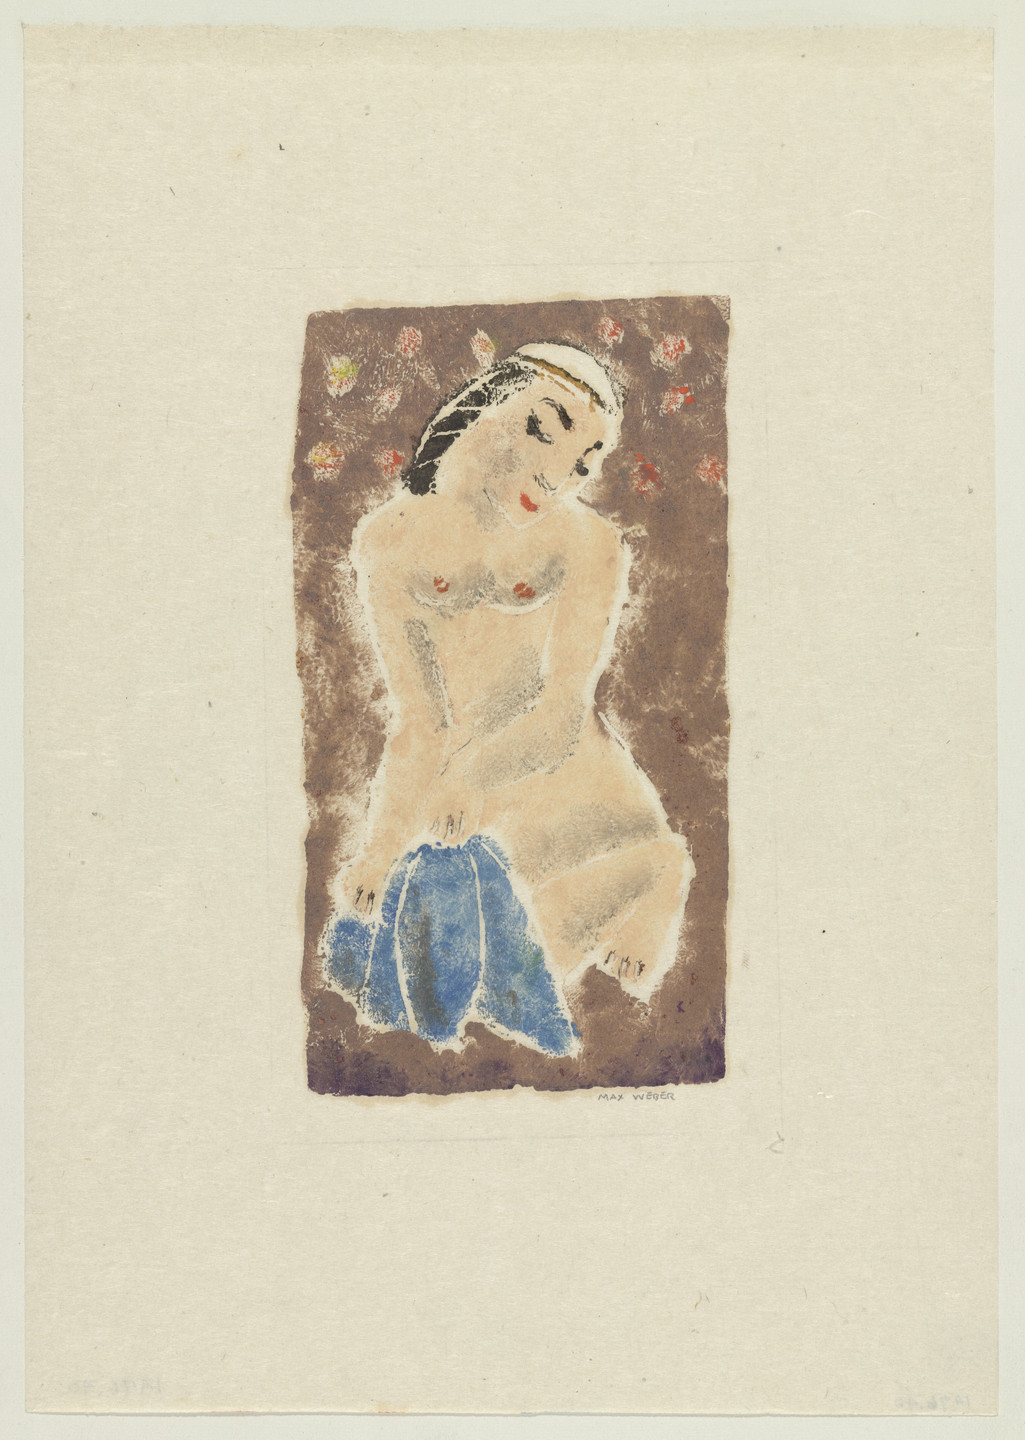 Max Weber. Crouching Nude Figure. 1910